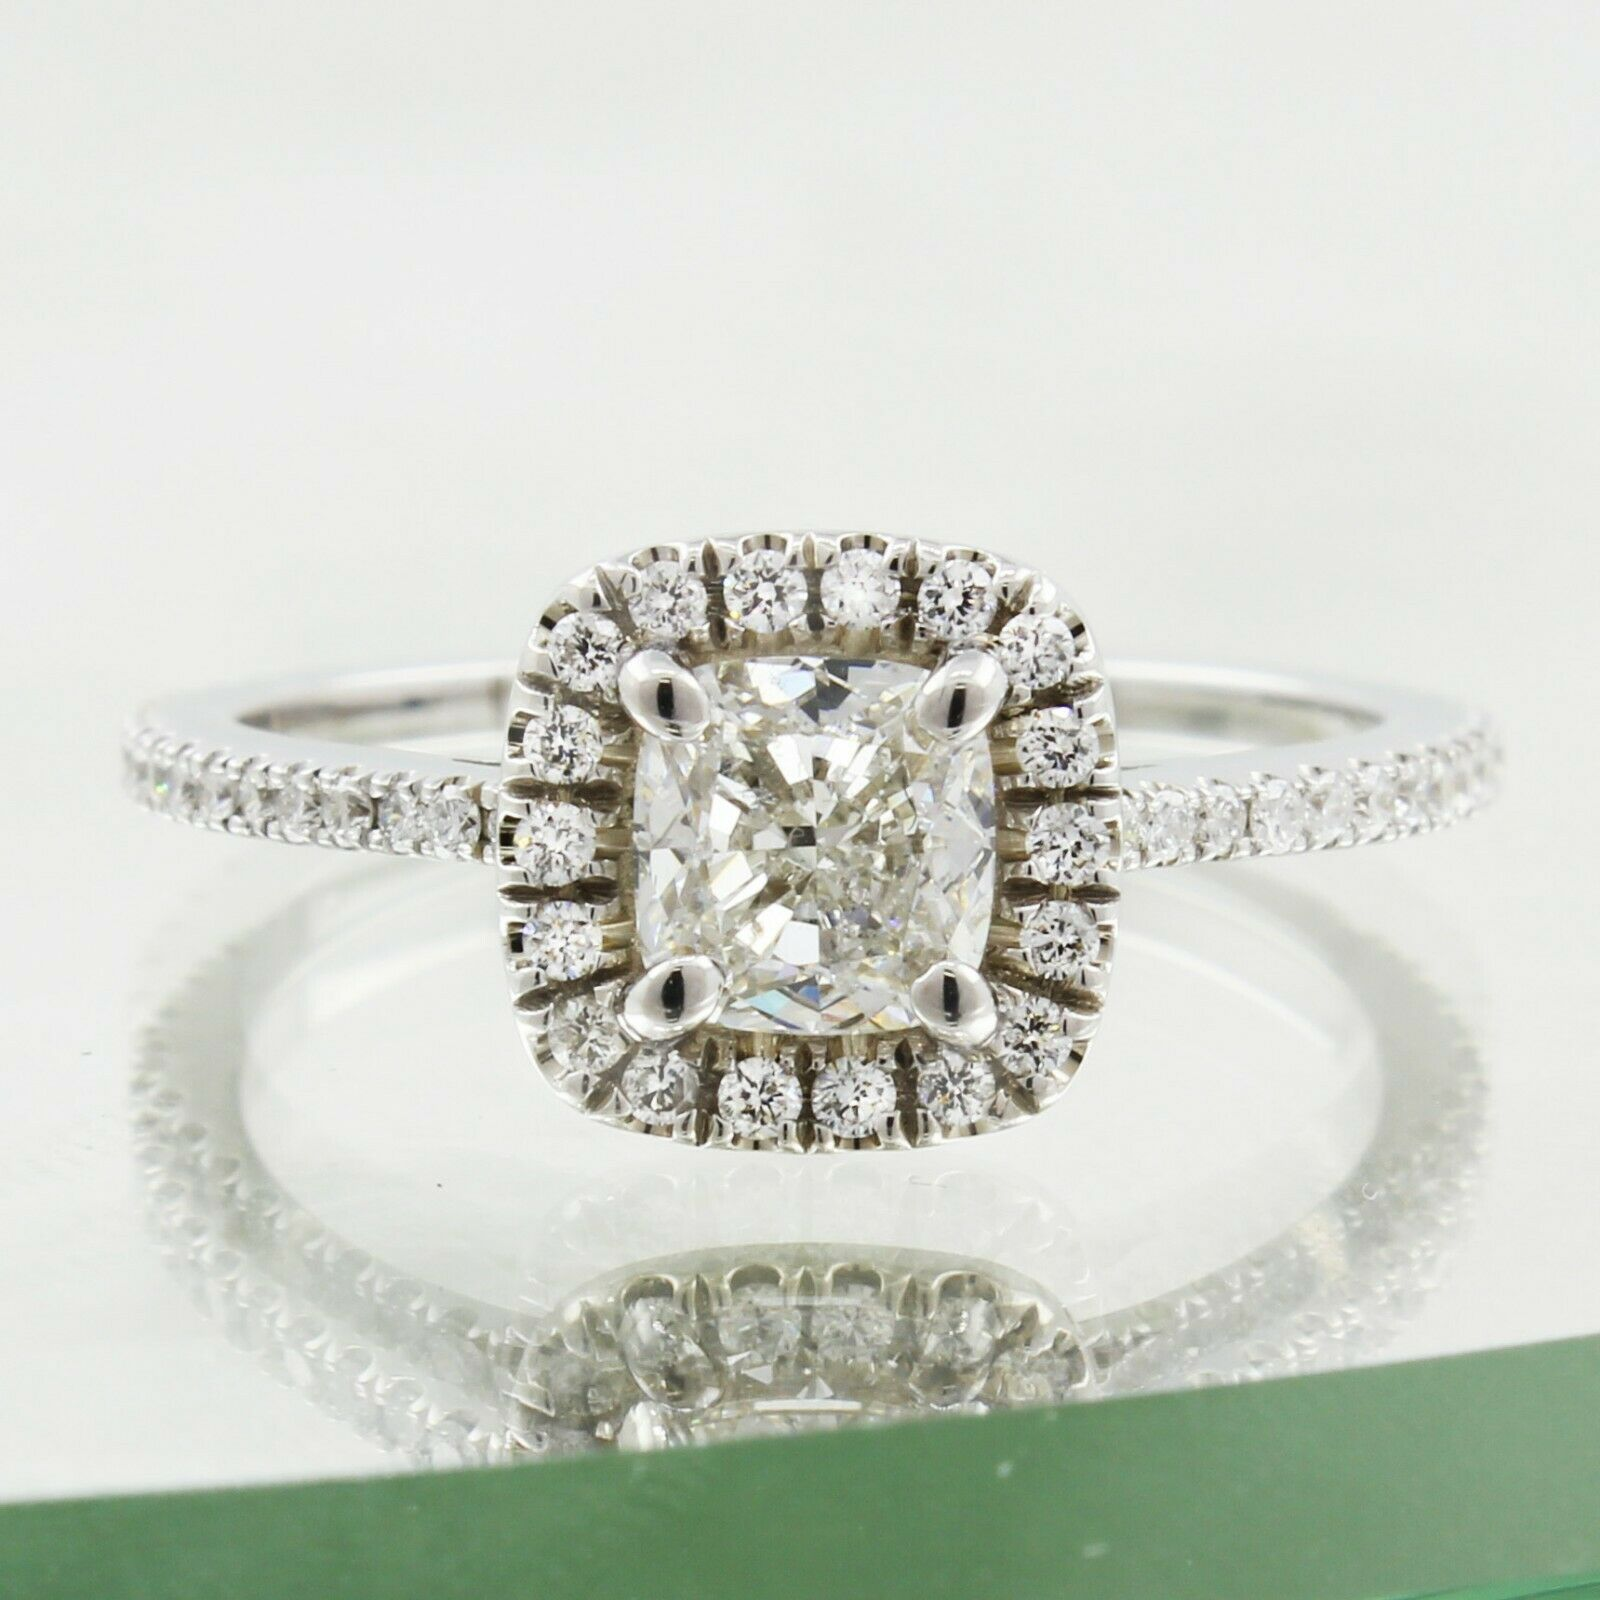 GIA Certified Diamond Engagement Ring 1.28 carat 14k White Gold Cushion Cut